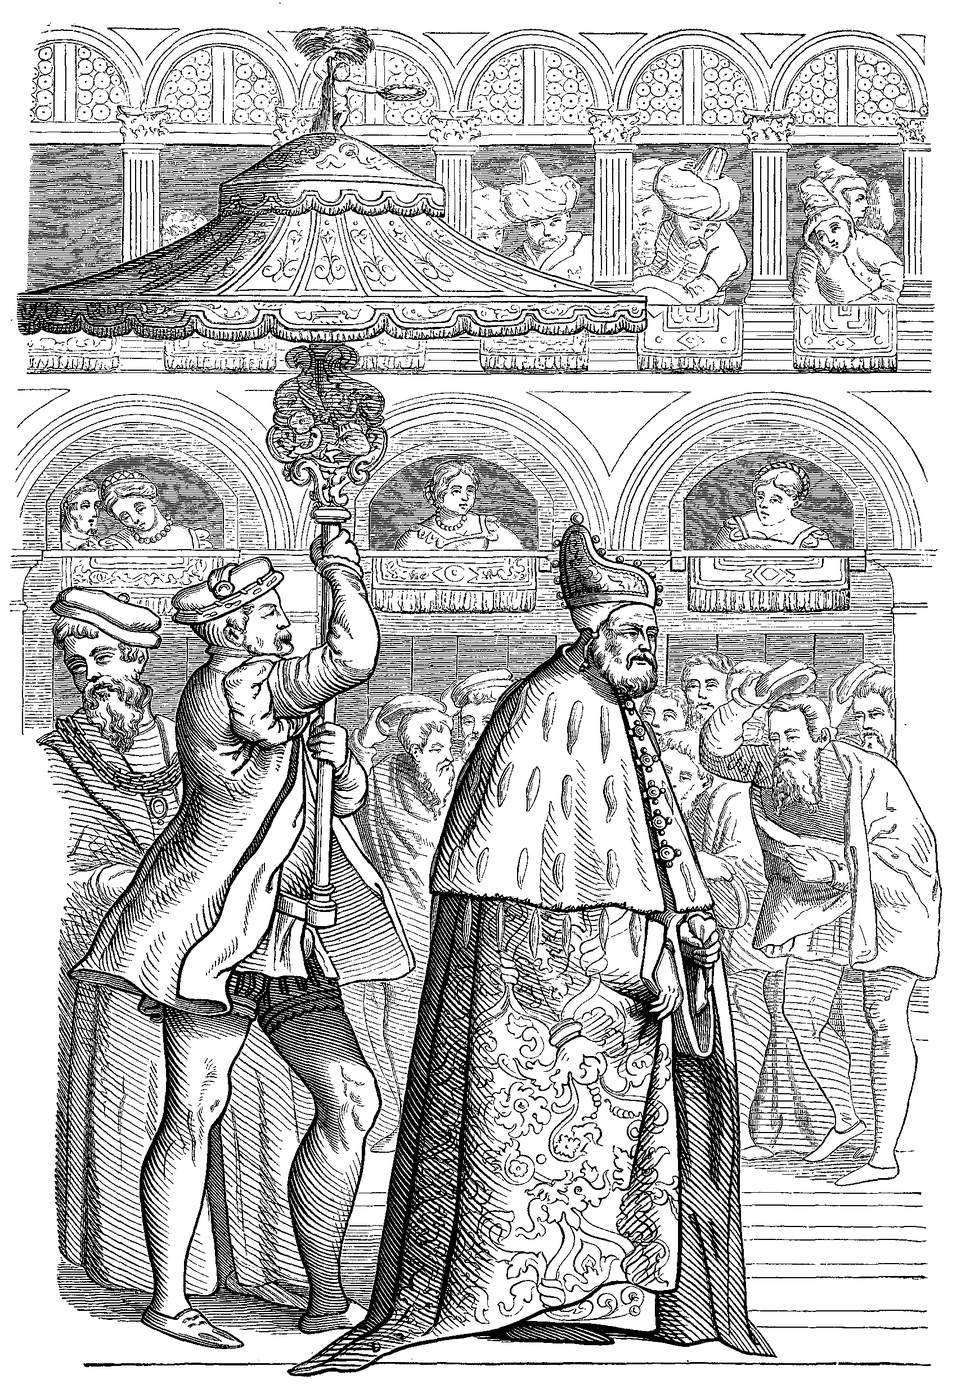 Grand Procession of the Doge of Venice